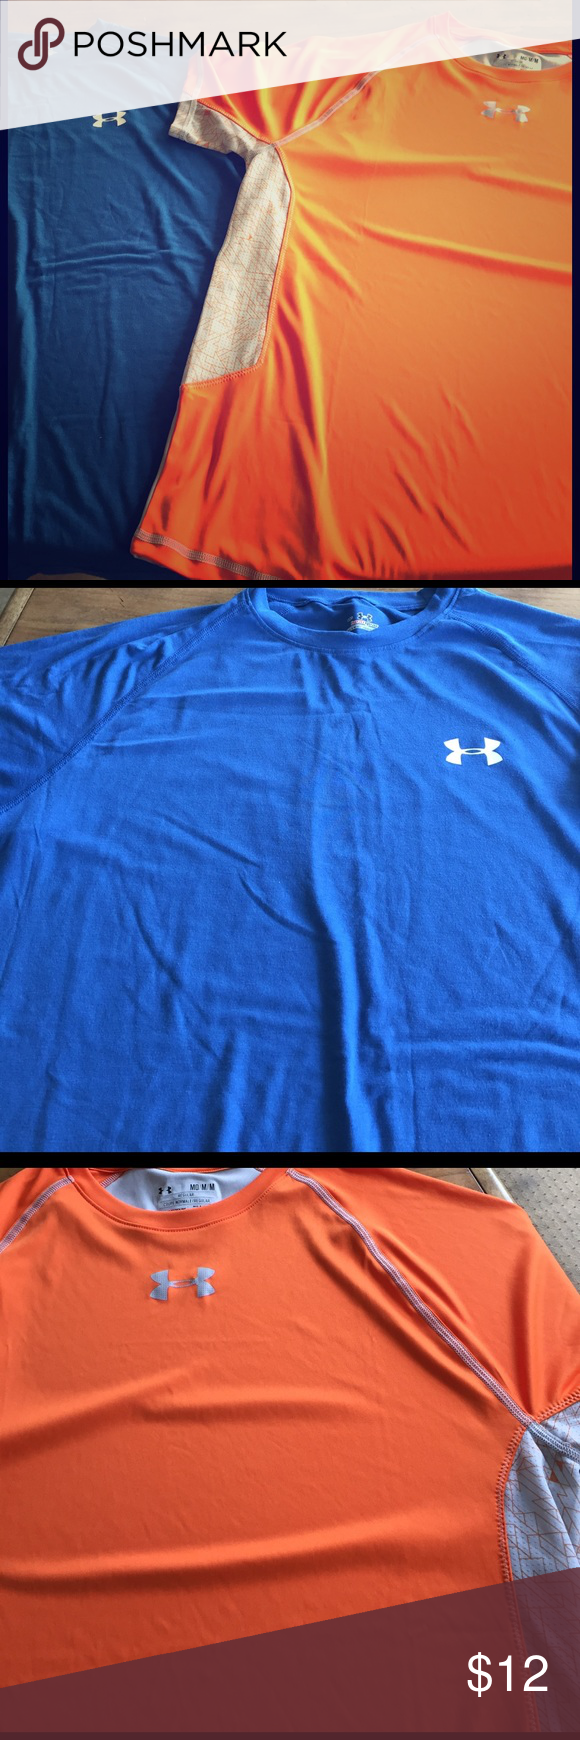 2 Under Armour shirt Includes 2 Under Armour Men shirts. Size medium. In good condition Under Armour Shirts Tees - Short Sleeve